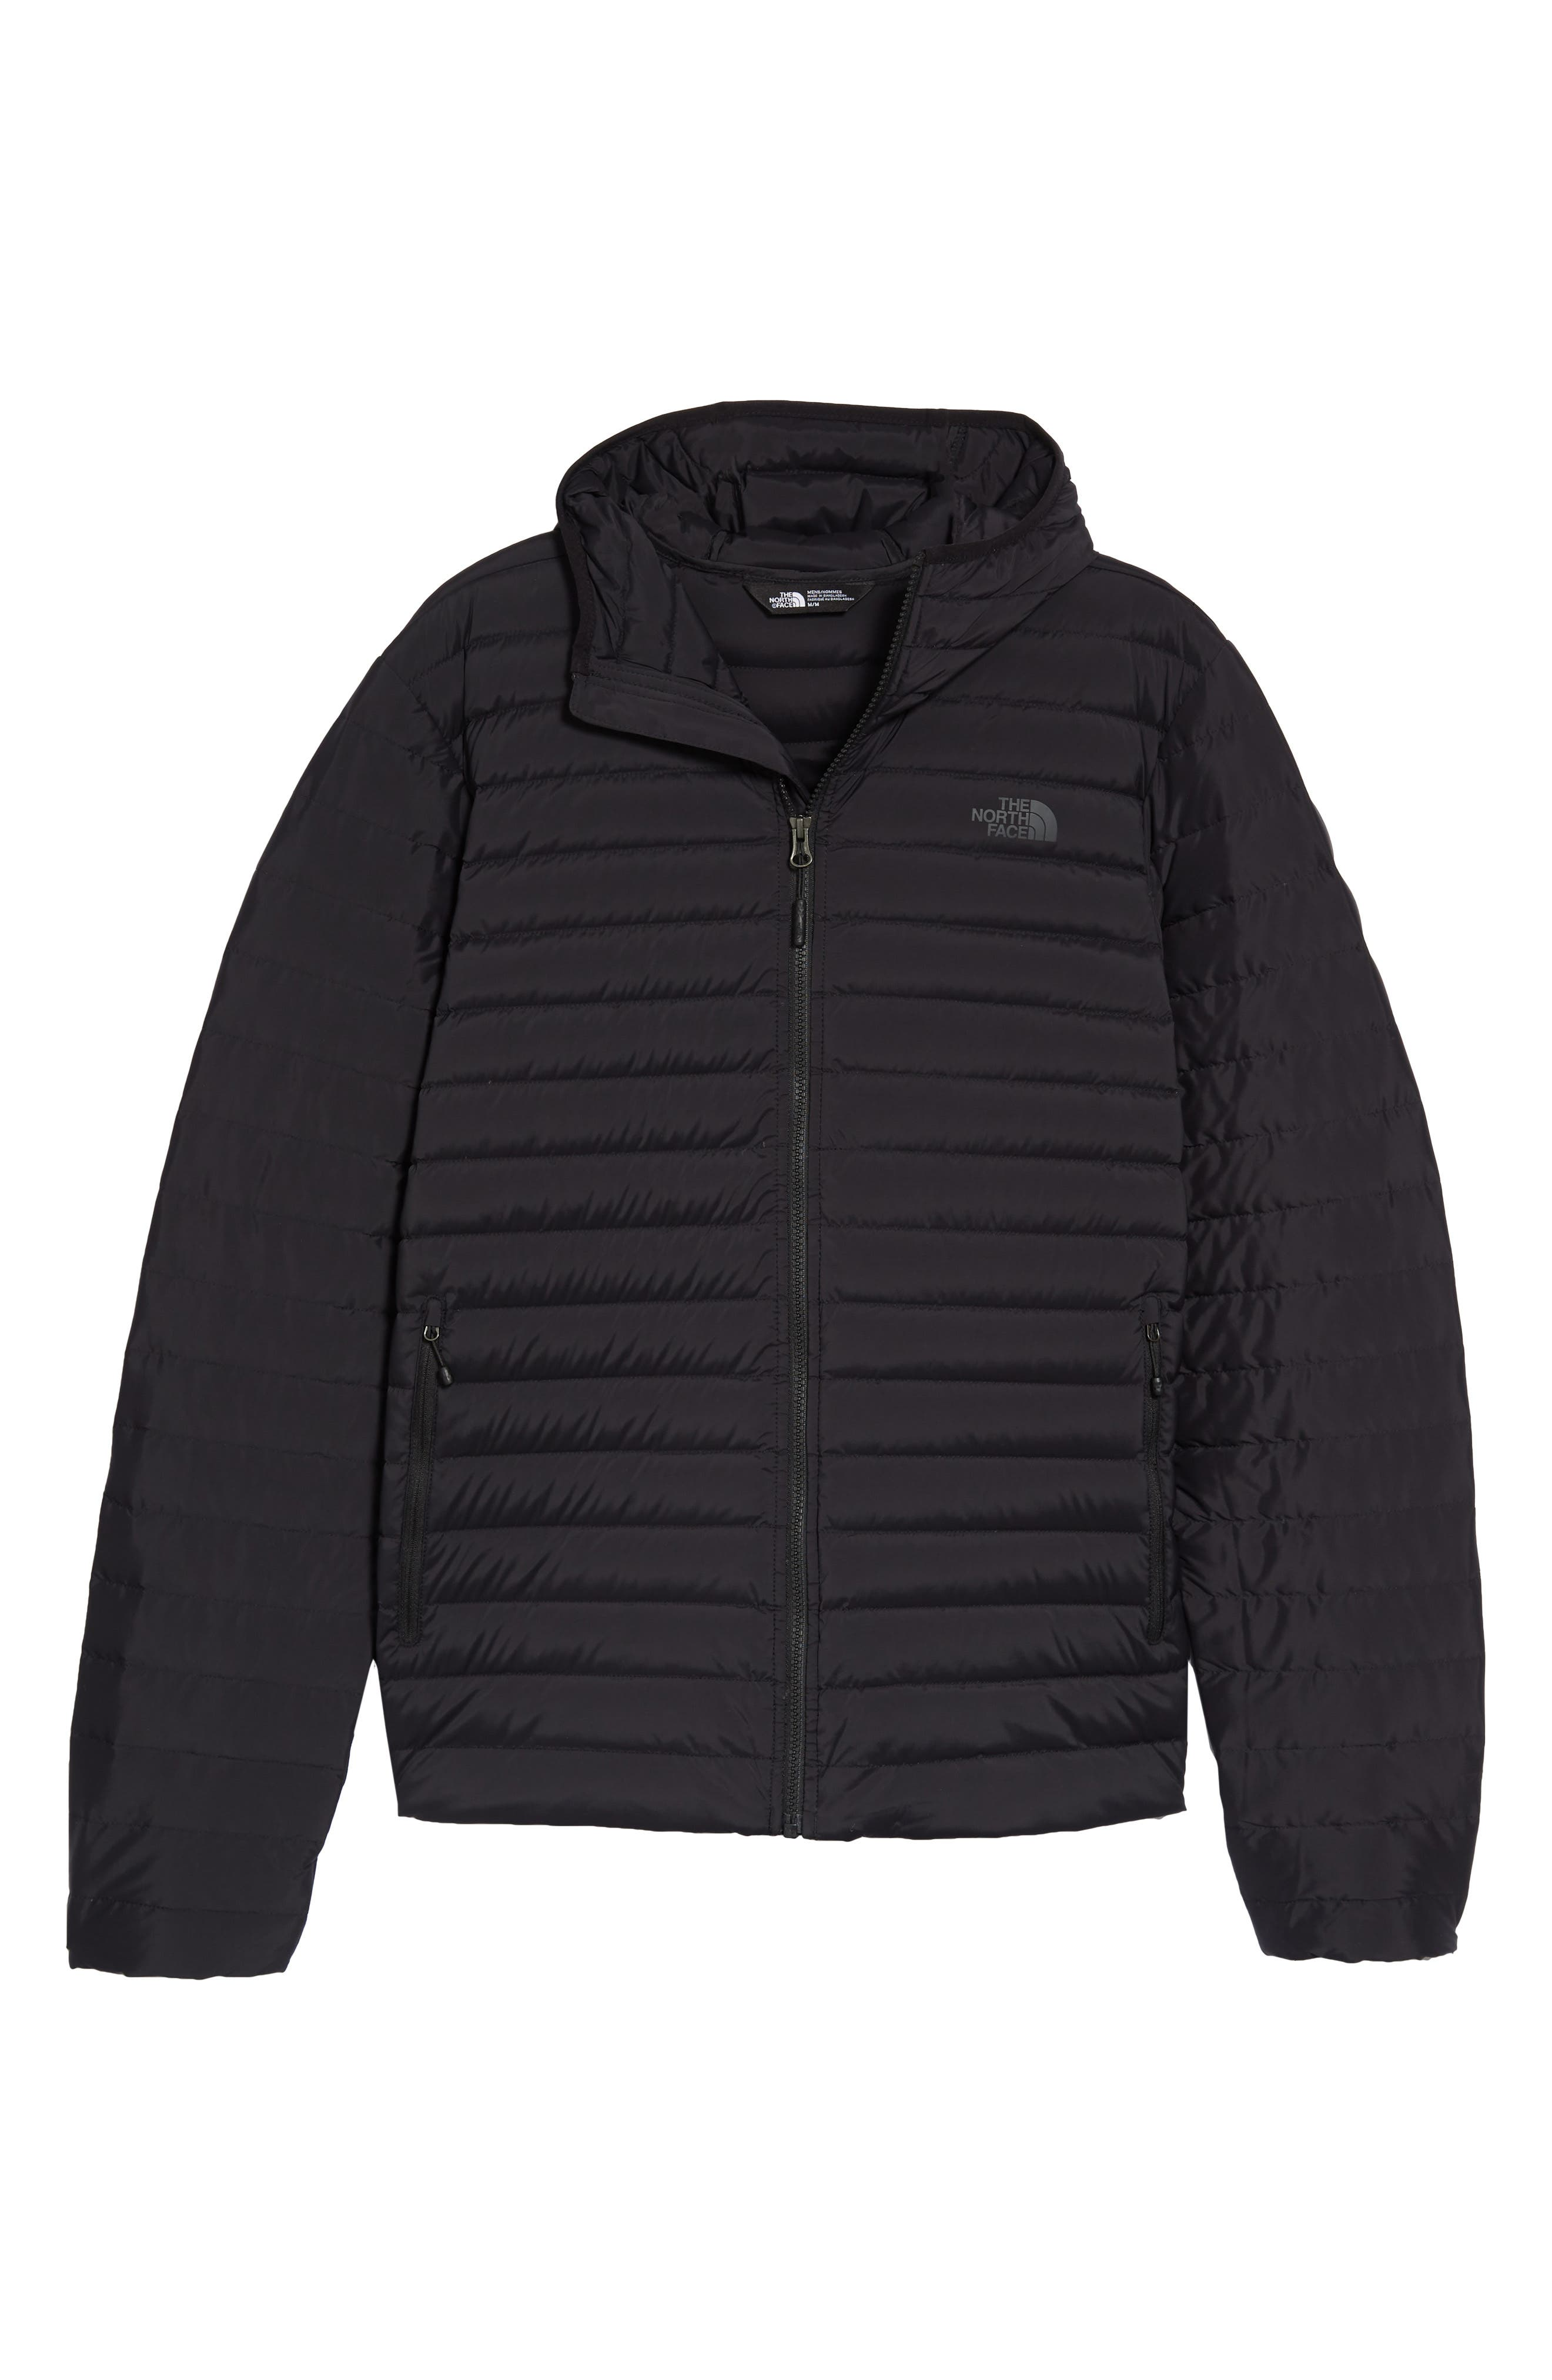 THE NORTH FACE, Packable Stretch Down Hooded Jacket, Alternate thumbnail 6, color, 001